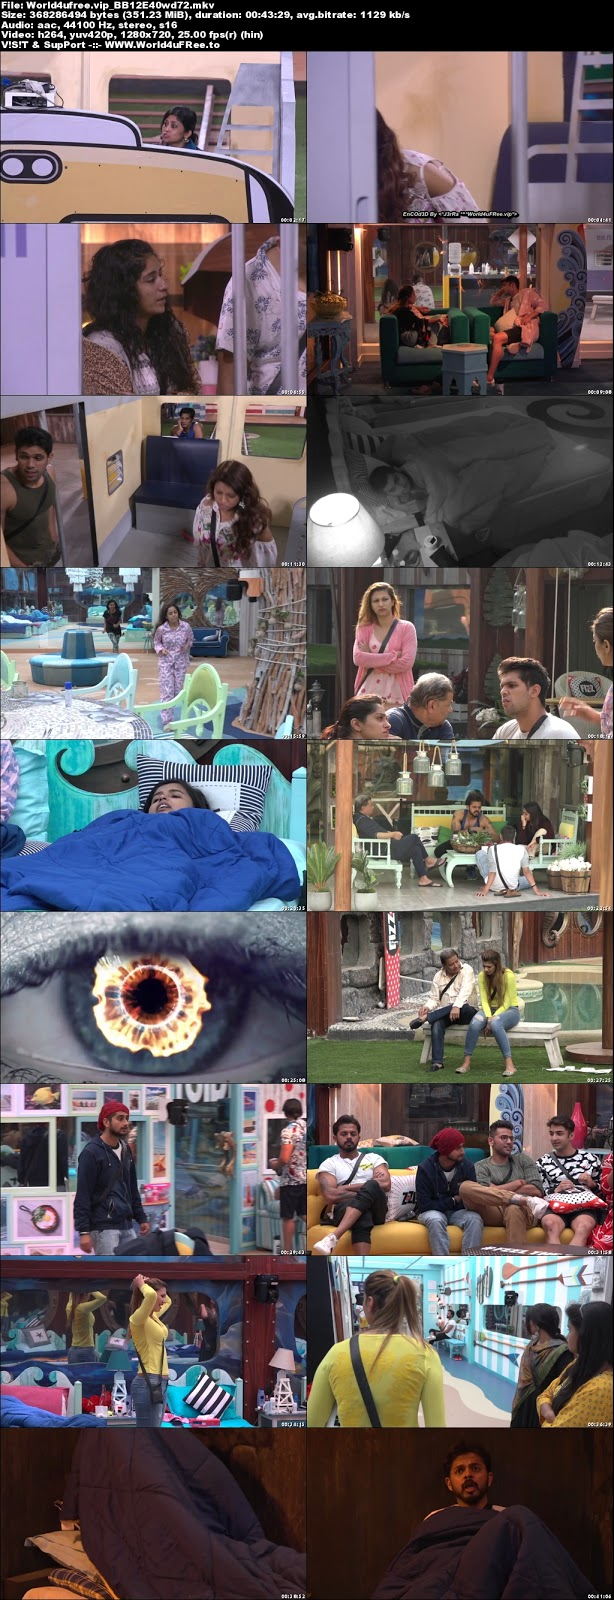 Bigg Boss 12 Episode 40 26 October 2018 720p WEBRip 350Mb x264 world4ufree.fun tv show Episode 40 26 October 2018 world4ufree.fun 300mb 250mb 300mb compressed small size free download or watch online at world4ufree.fun